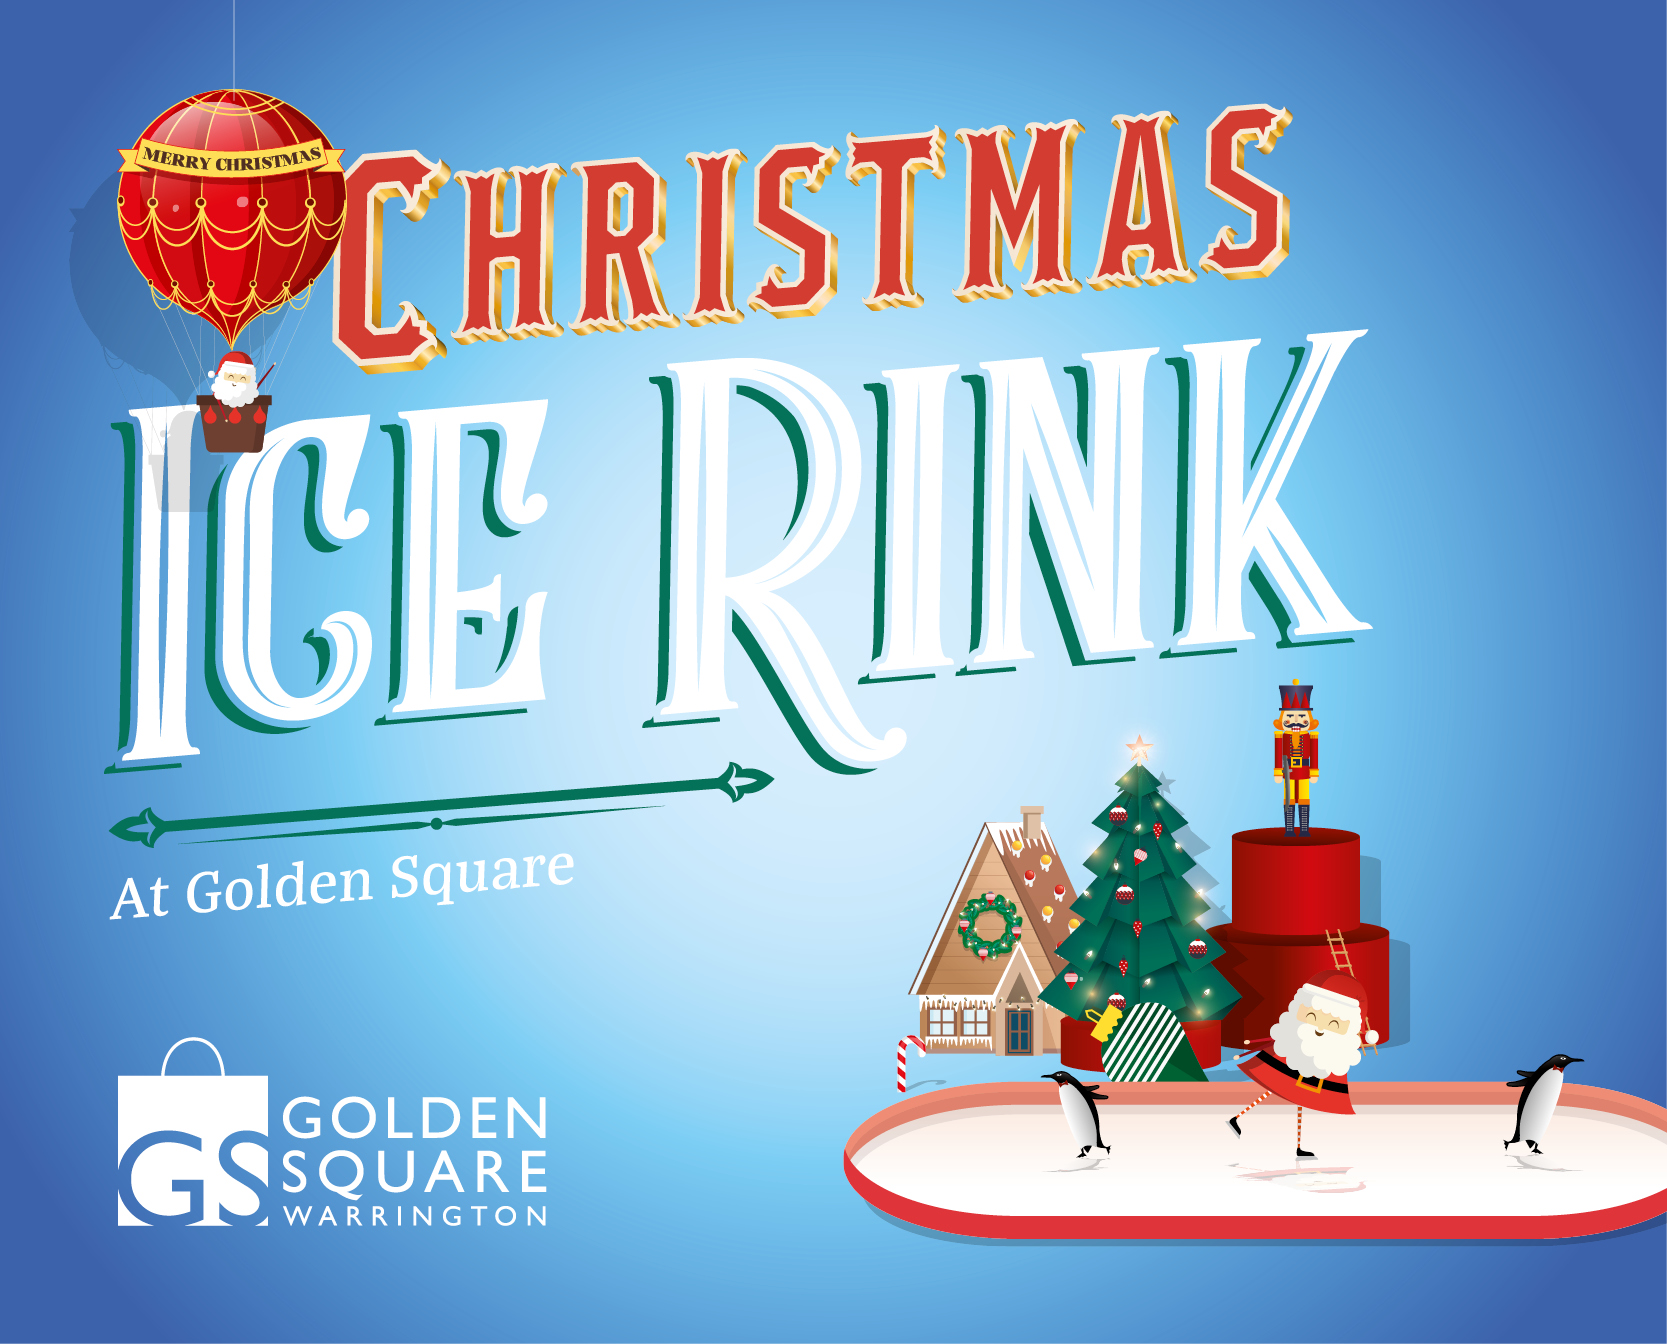 Golden Square Christmas Ice Rink